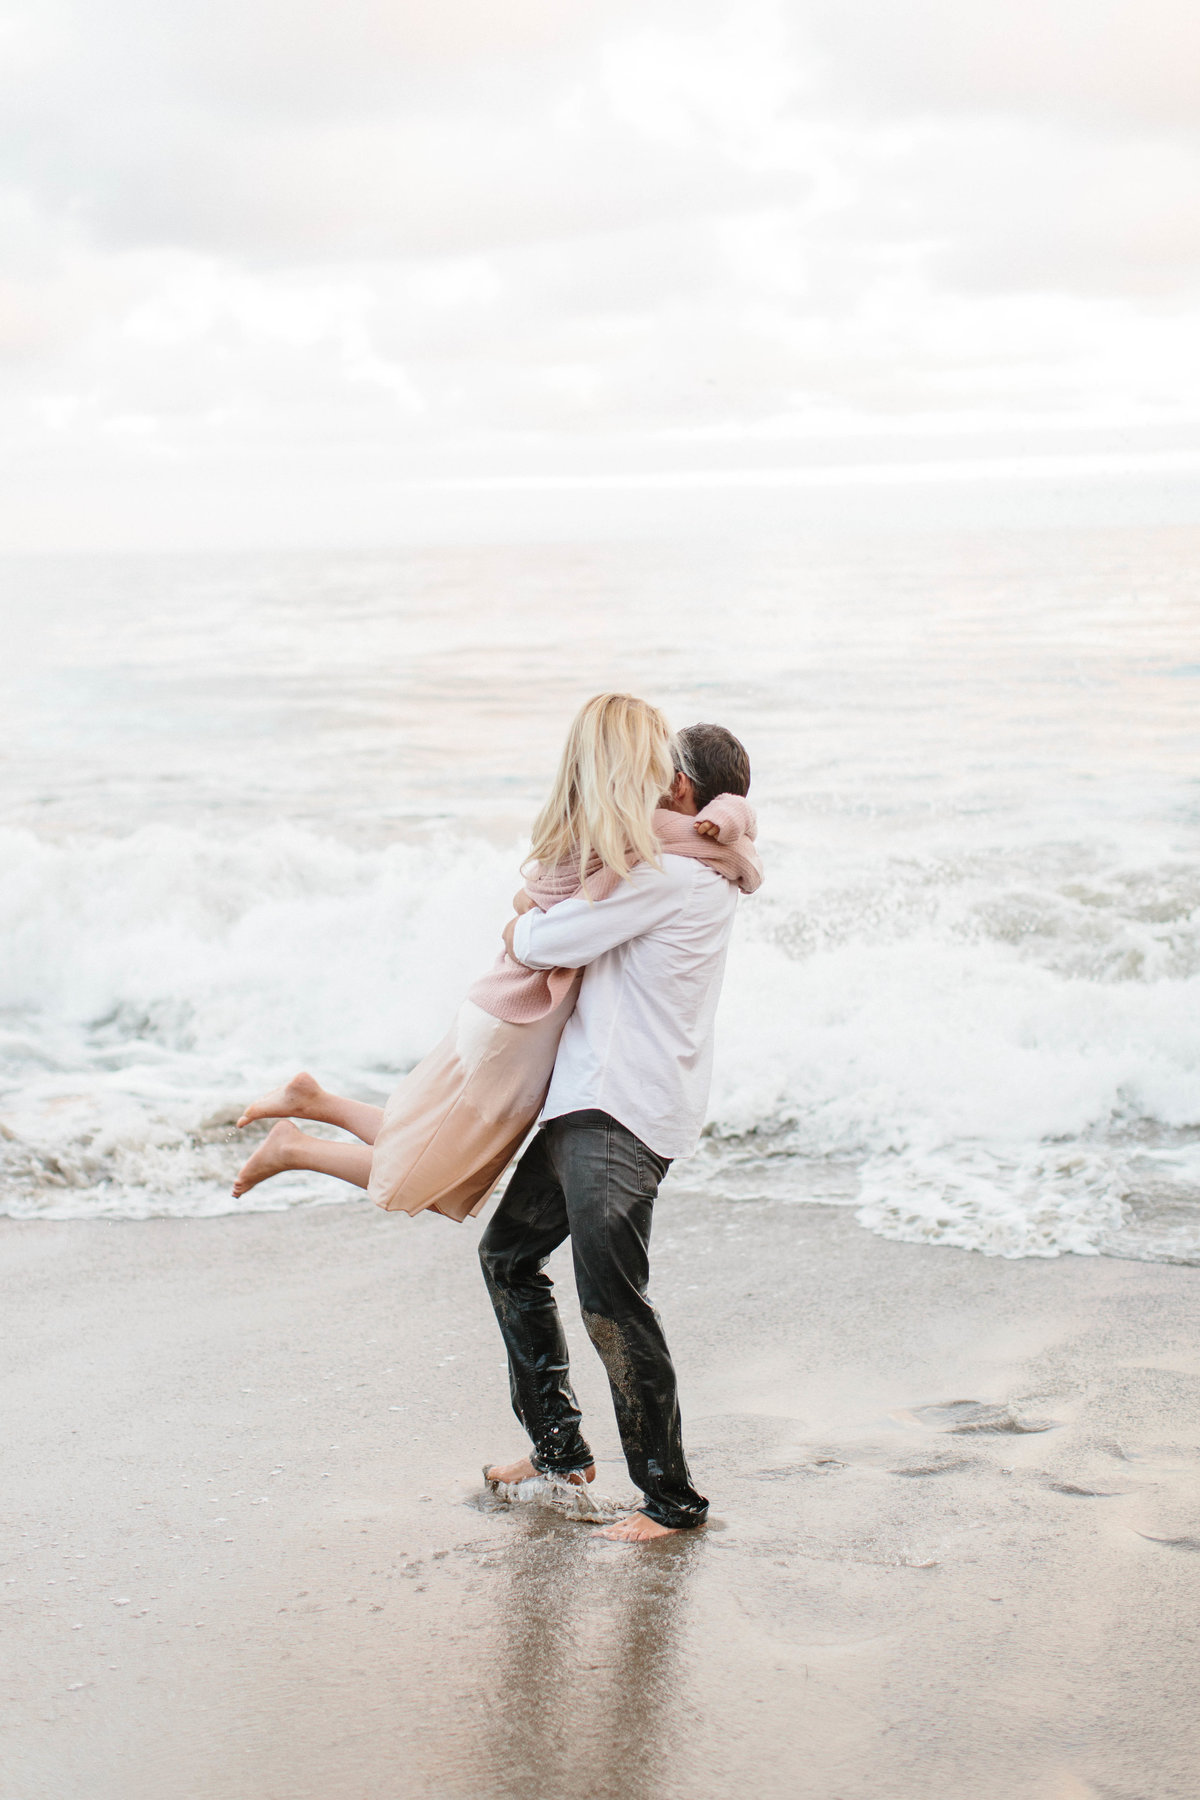 _film_santa_barbara_alexandria_christian_flowers_stone_christianne_taylor_malibu_cafe_engagements_el_matador_state_beach (268 of 270) copy